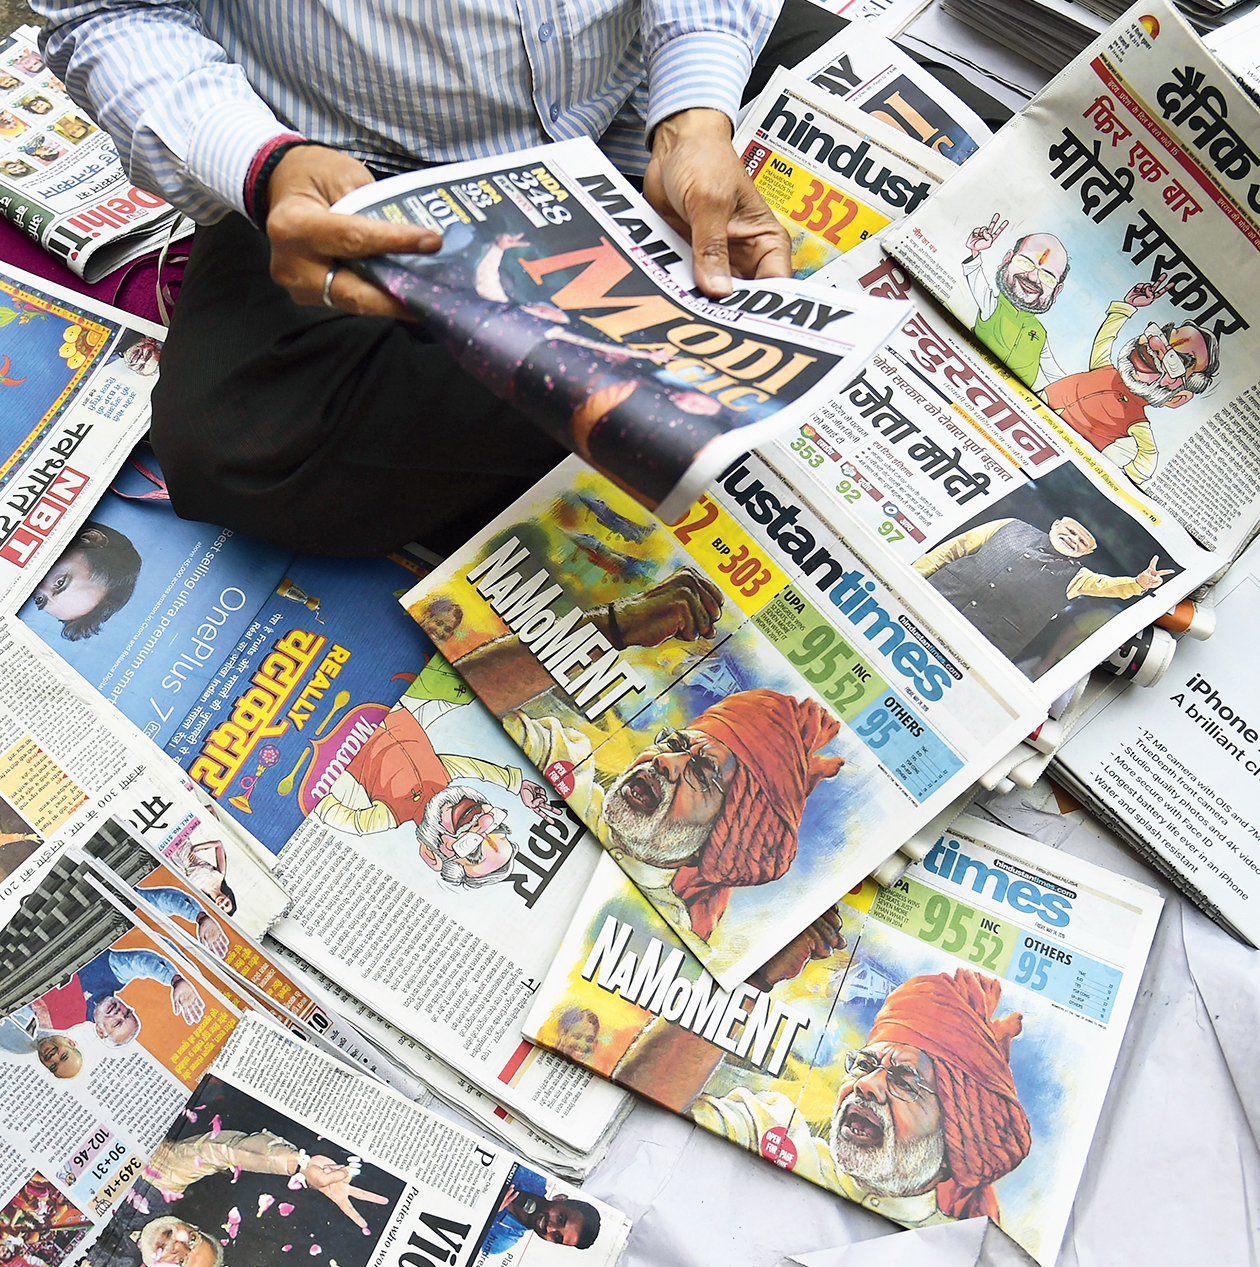 Indian newpapers  featuring  Modi's victory.